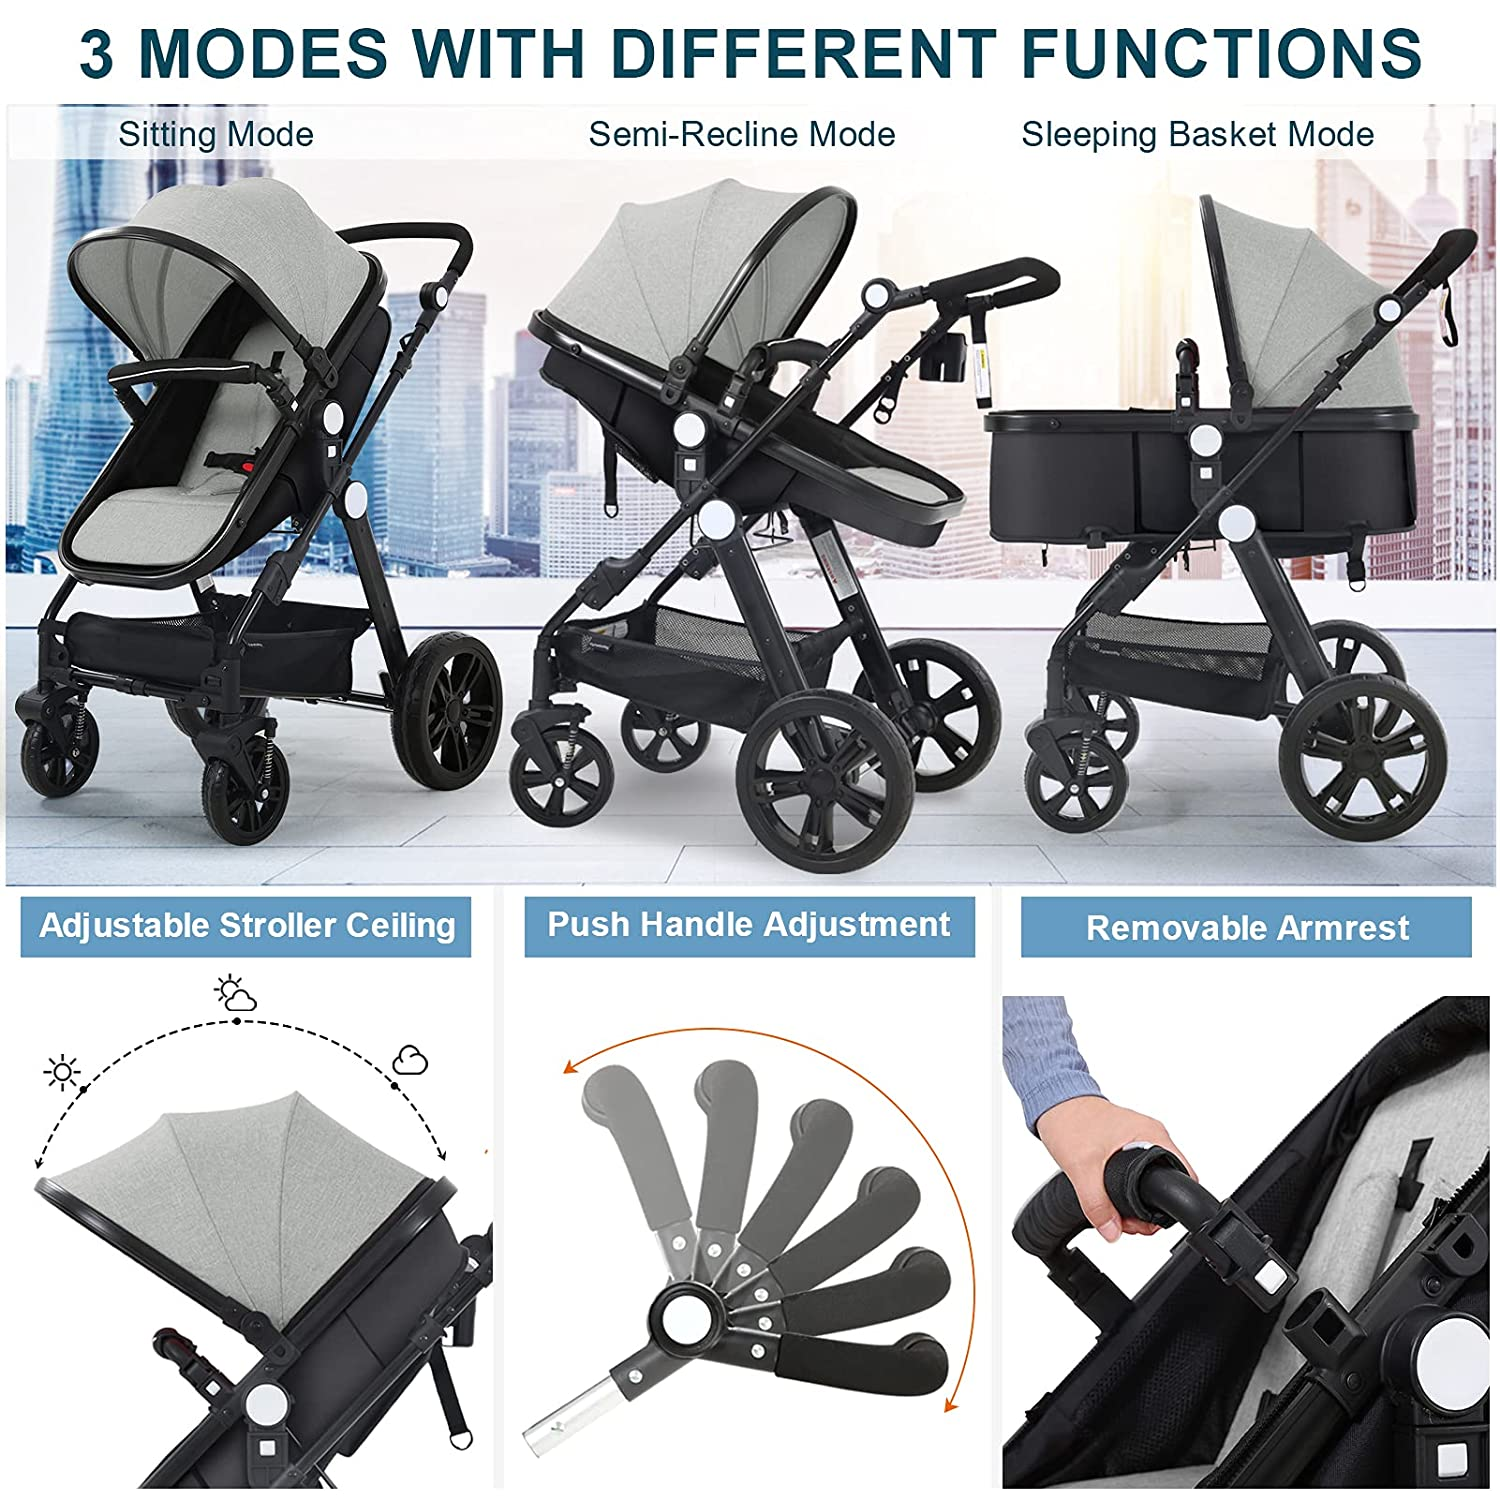 Newborn Infant Toddler Baby Stroller - Sleeping & Sitting Mode 2 in 1 All Terrain High Landscape Shock Absorption Sunshade Comfortable Baby Car for 0-36 Months Old Babies